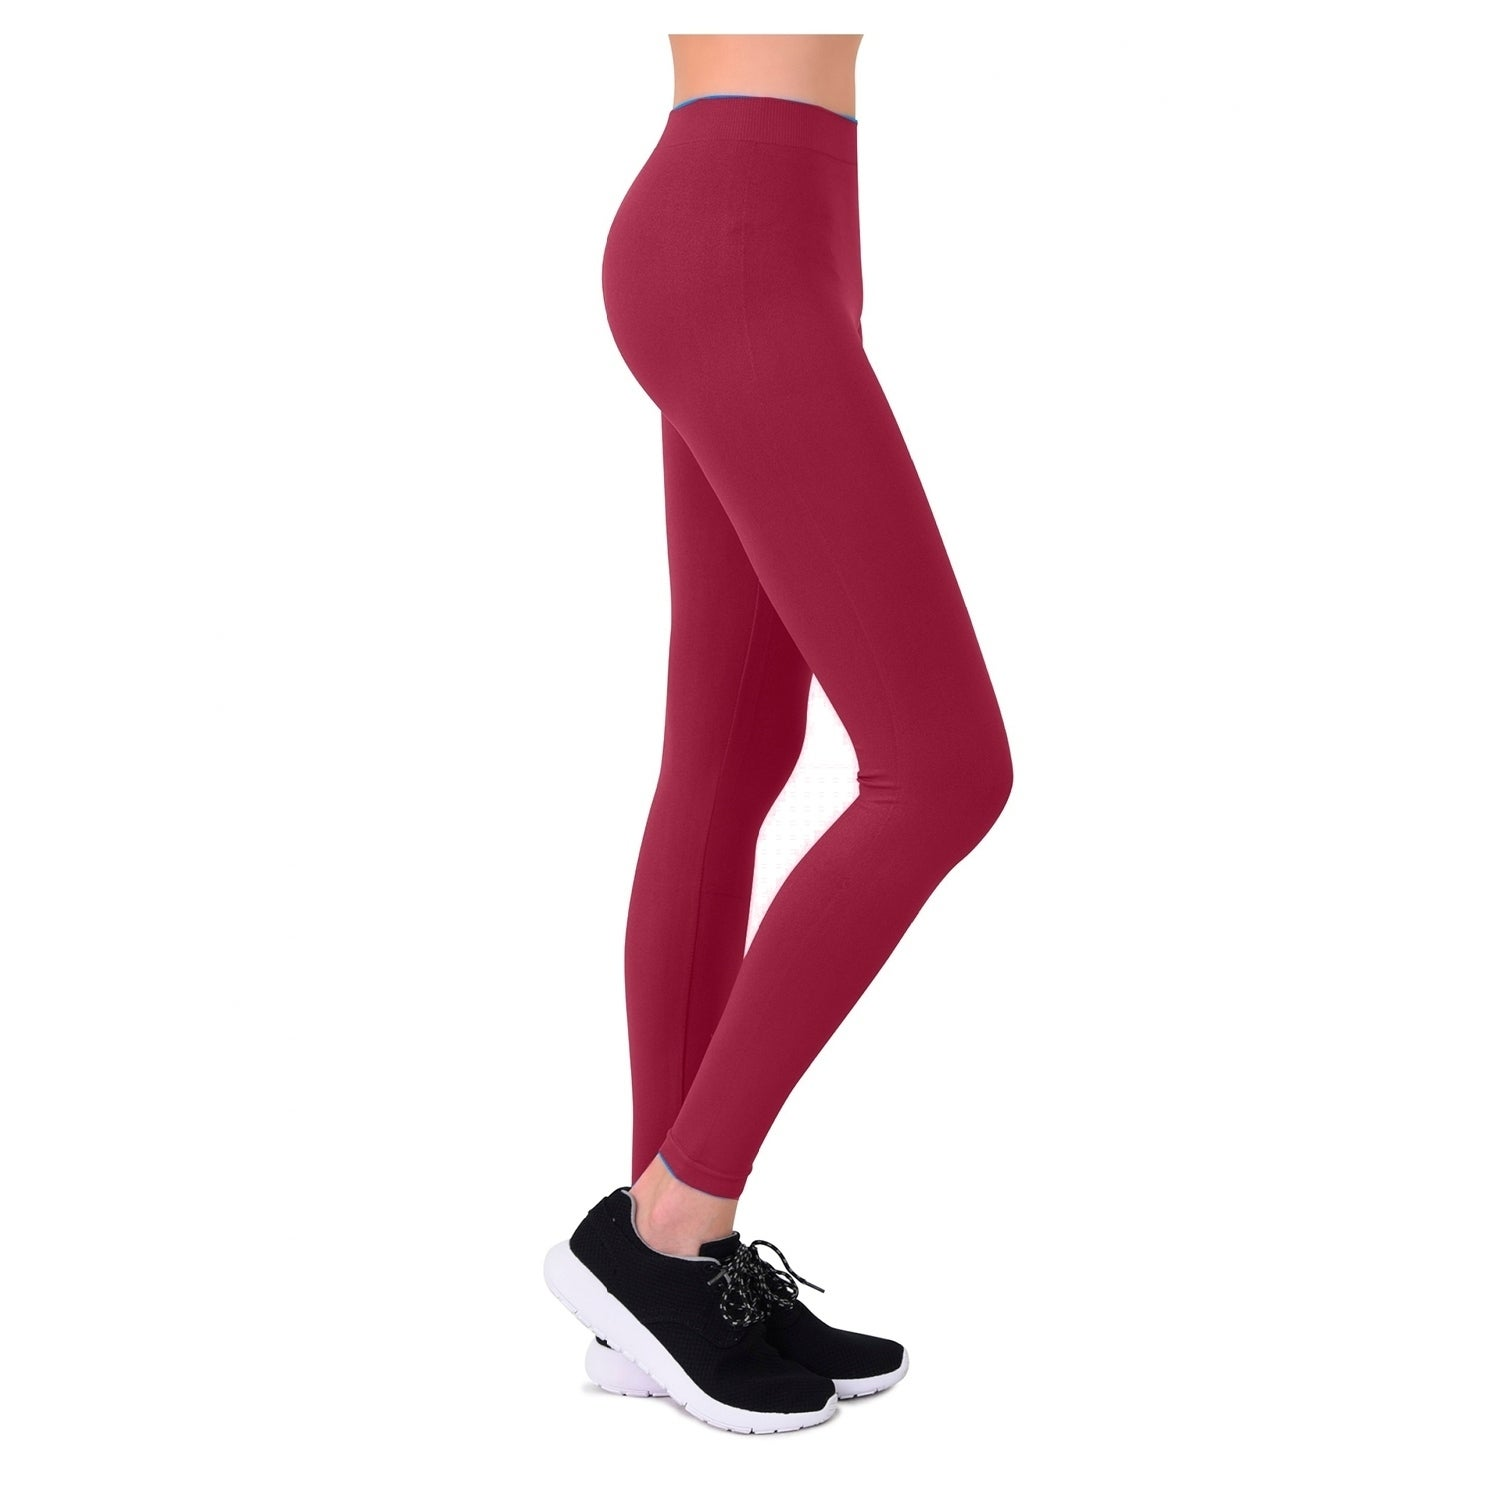 bf2cf9ba11093 Shop Mopas Ladies Nylon Leggings - Free Shipping On Orders Over $45 -  Overstock - 21479597